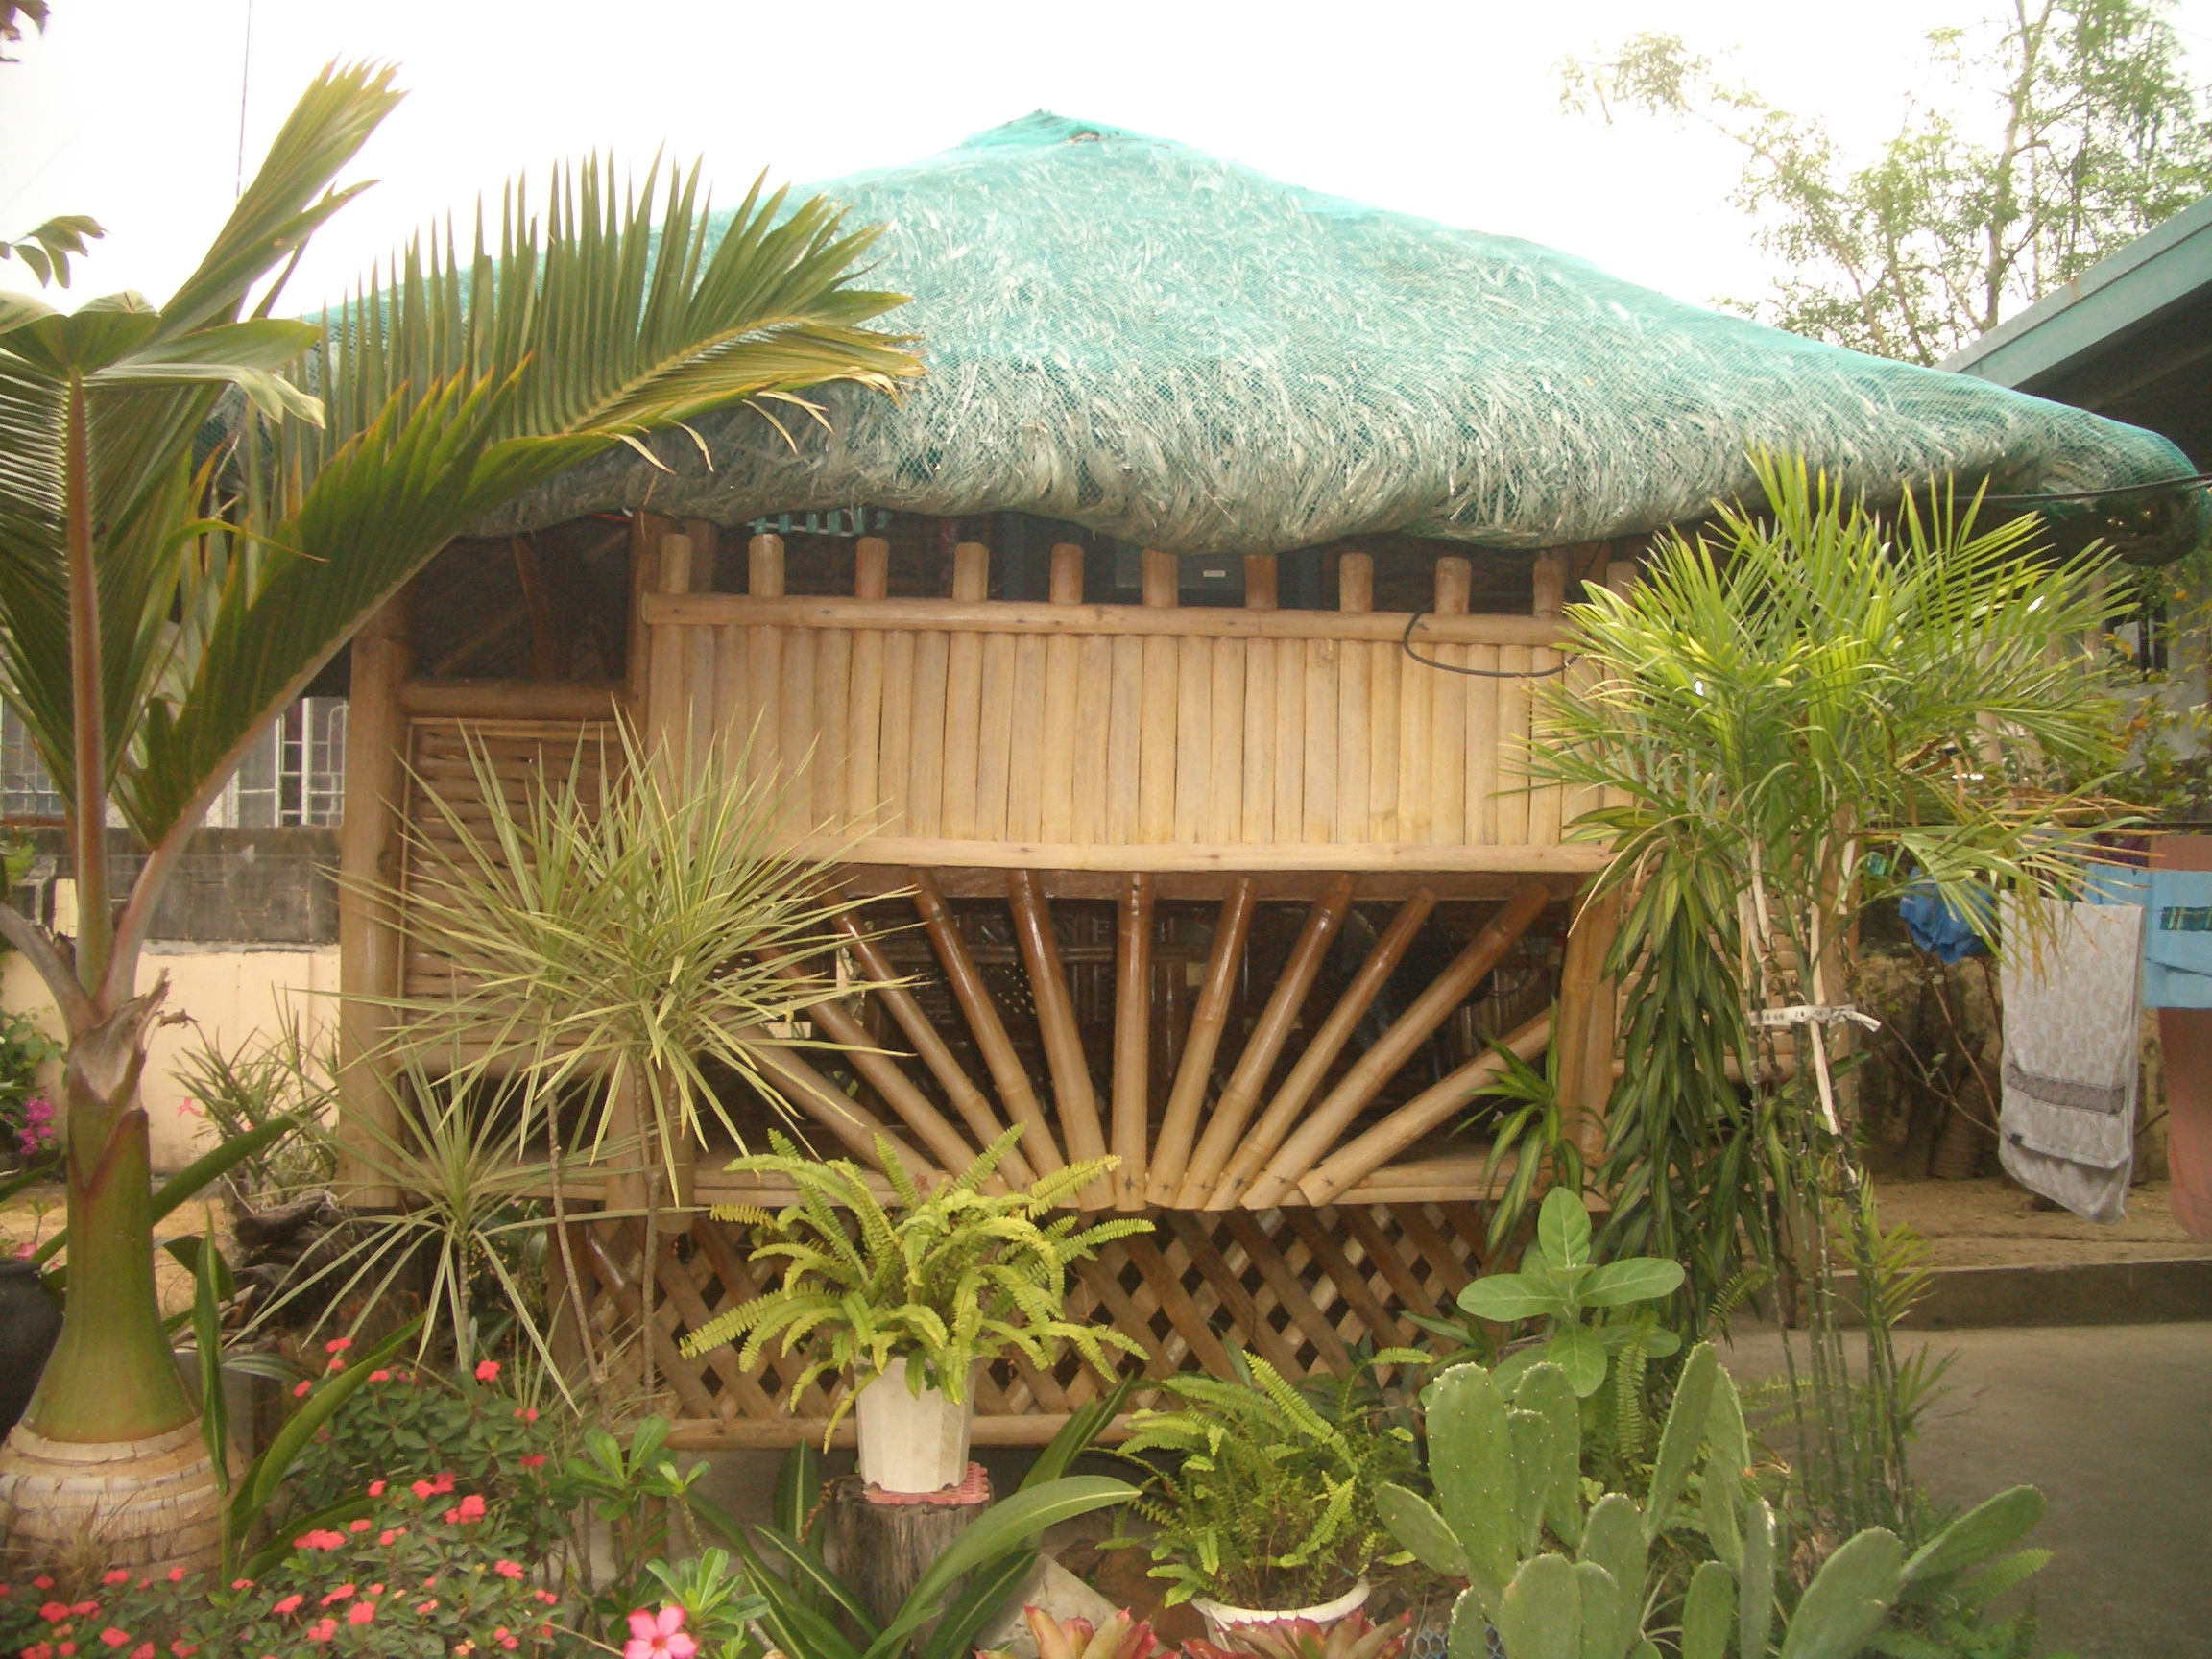 All sizes | modern bahay kubo philippines | Flickr - Photo Sharing!